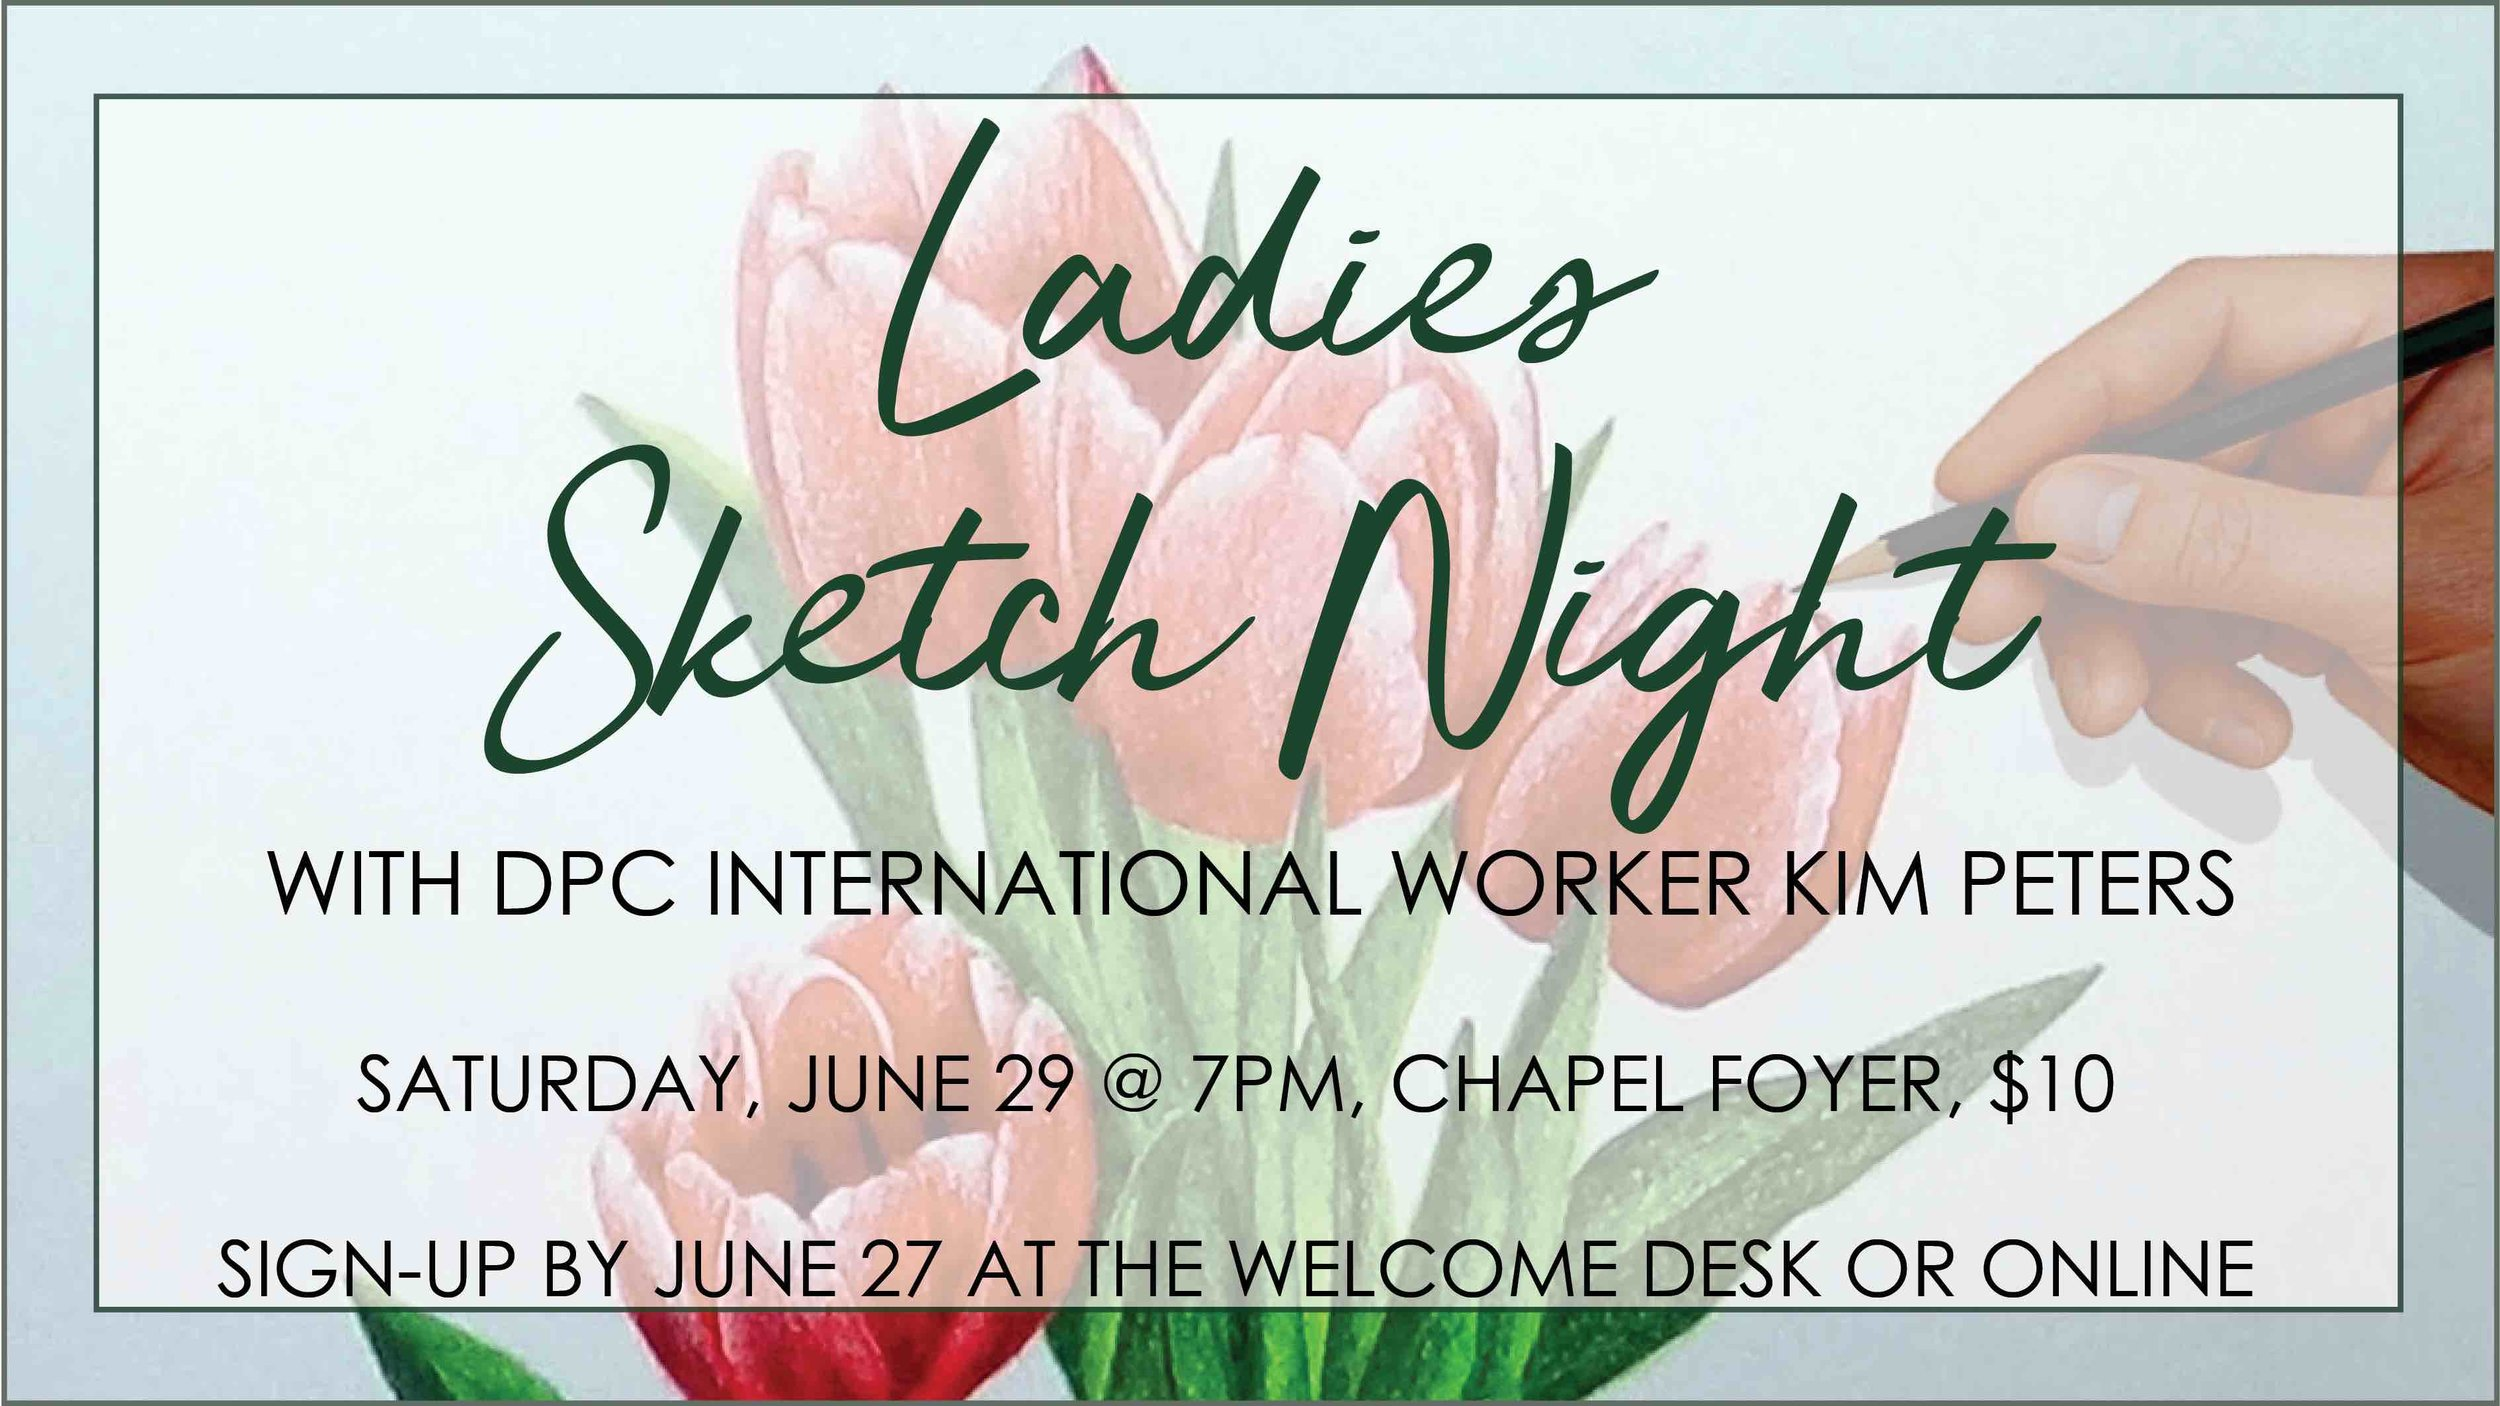 Ladies Sketch Night Slide copy.jpg